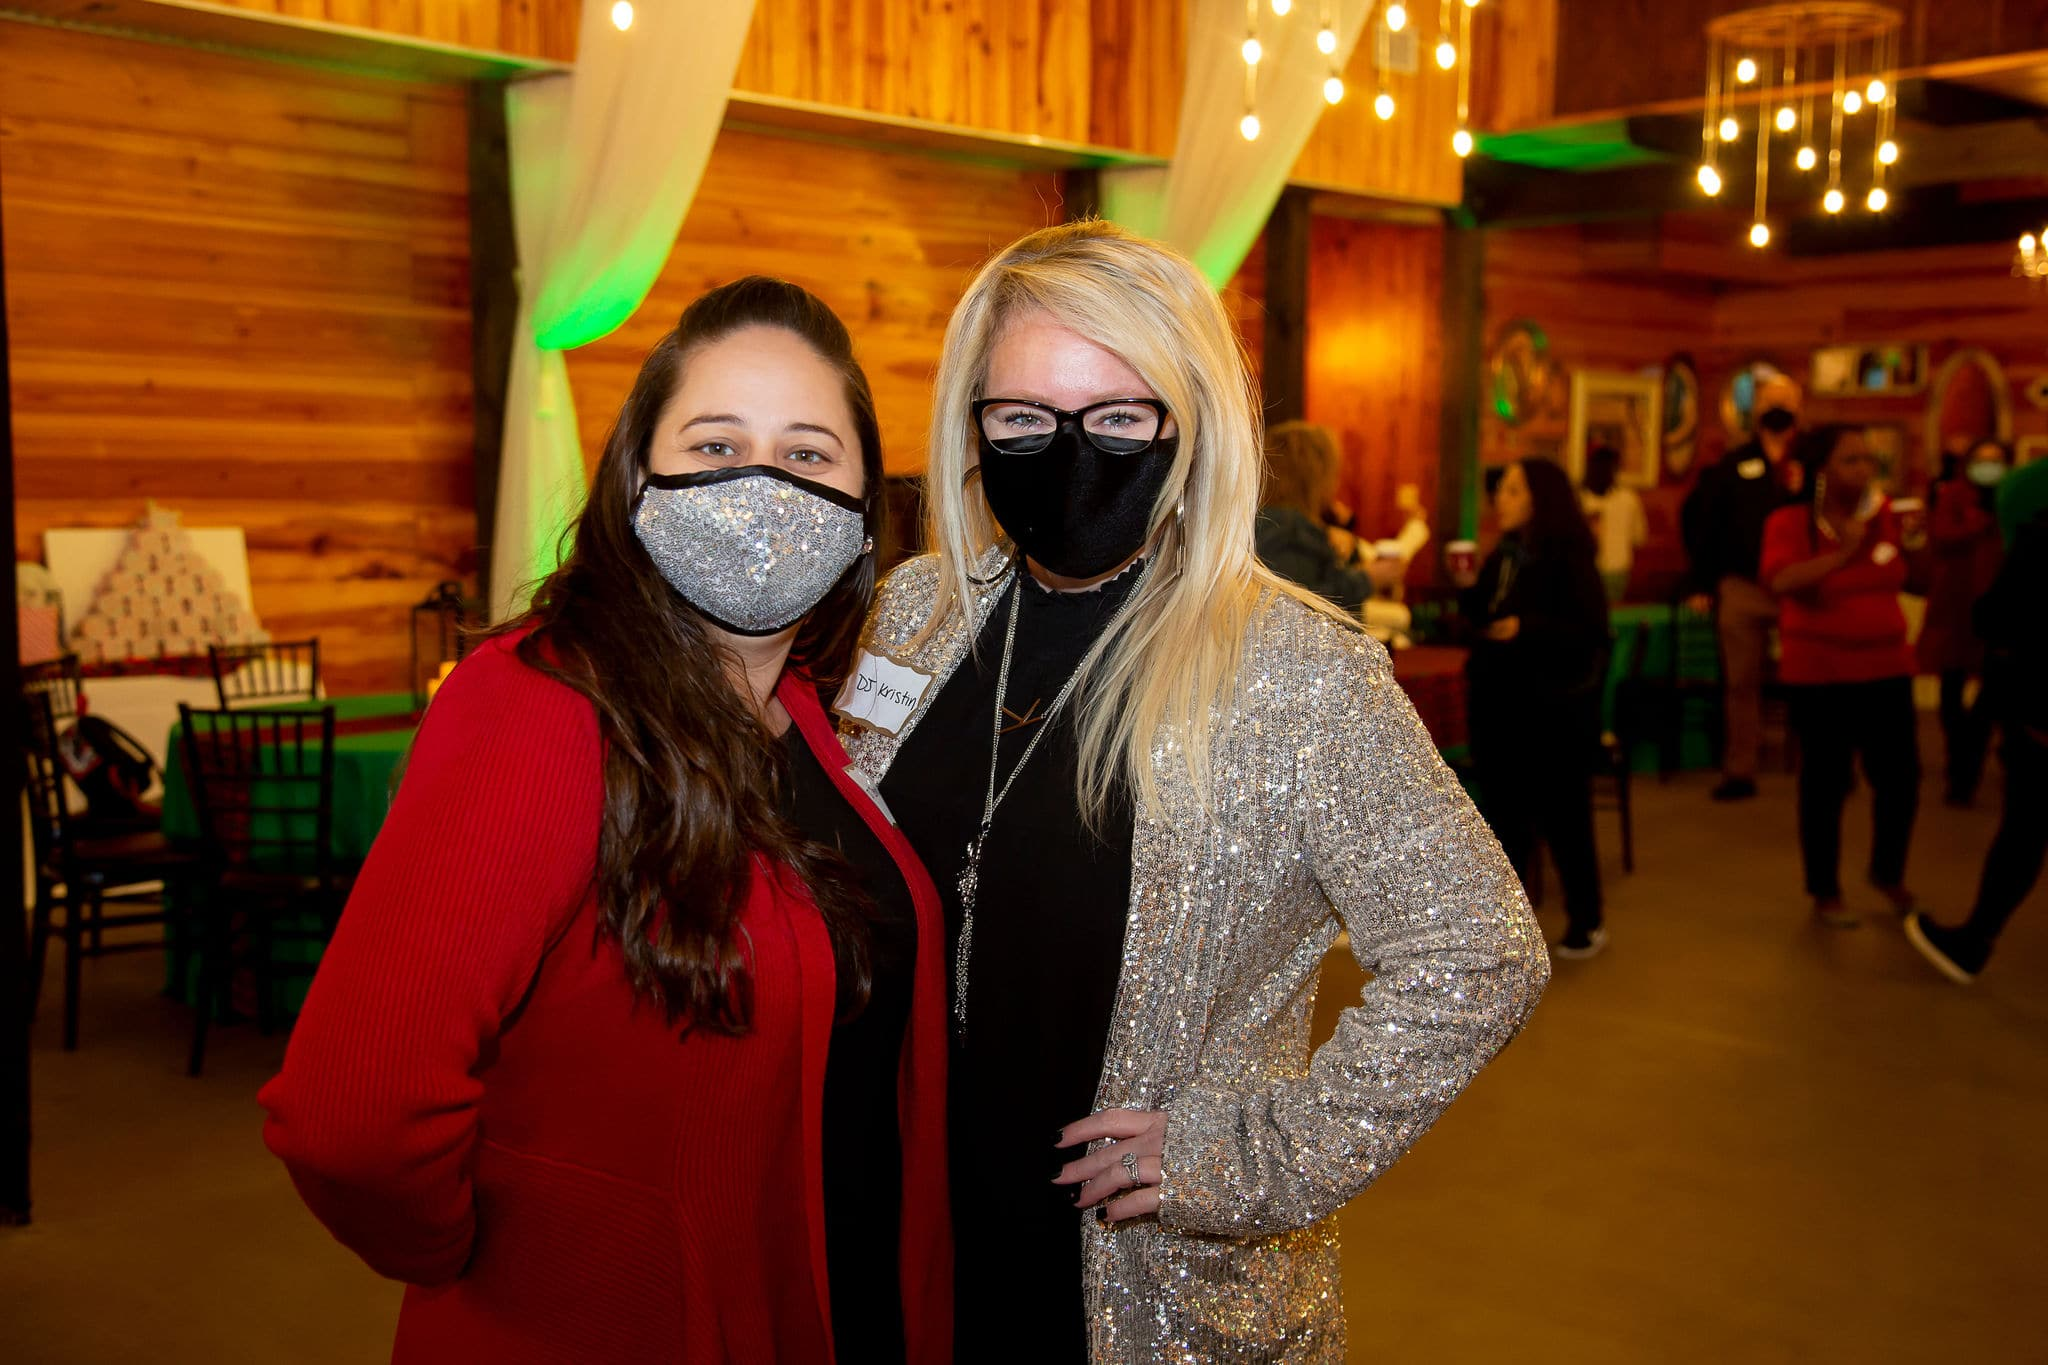 woman wearing silver glitter face covering and red sweater stands next to blonde woman wearing black shirt and gold glitter jacket with glasses and black face covering on